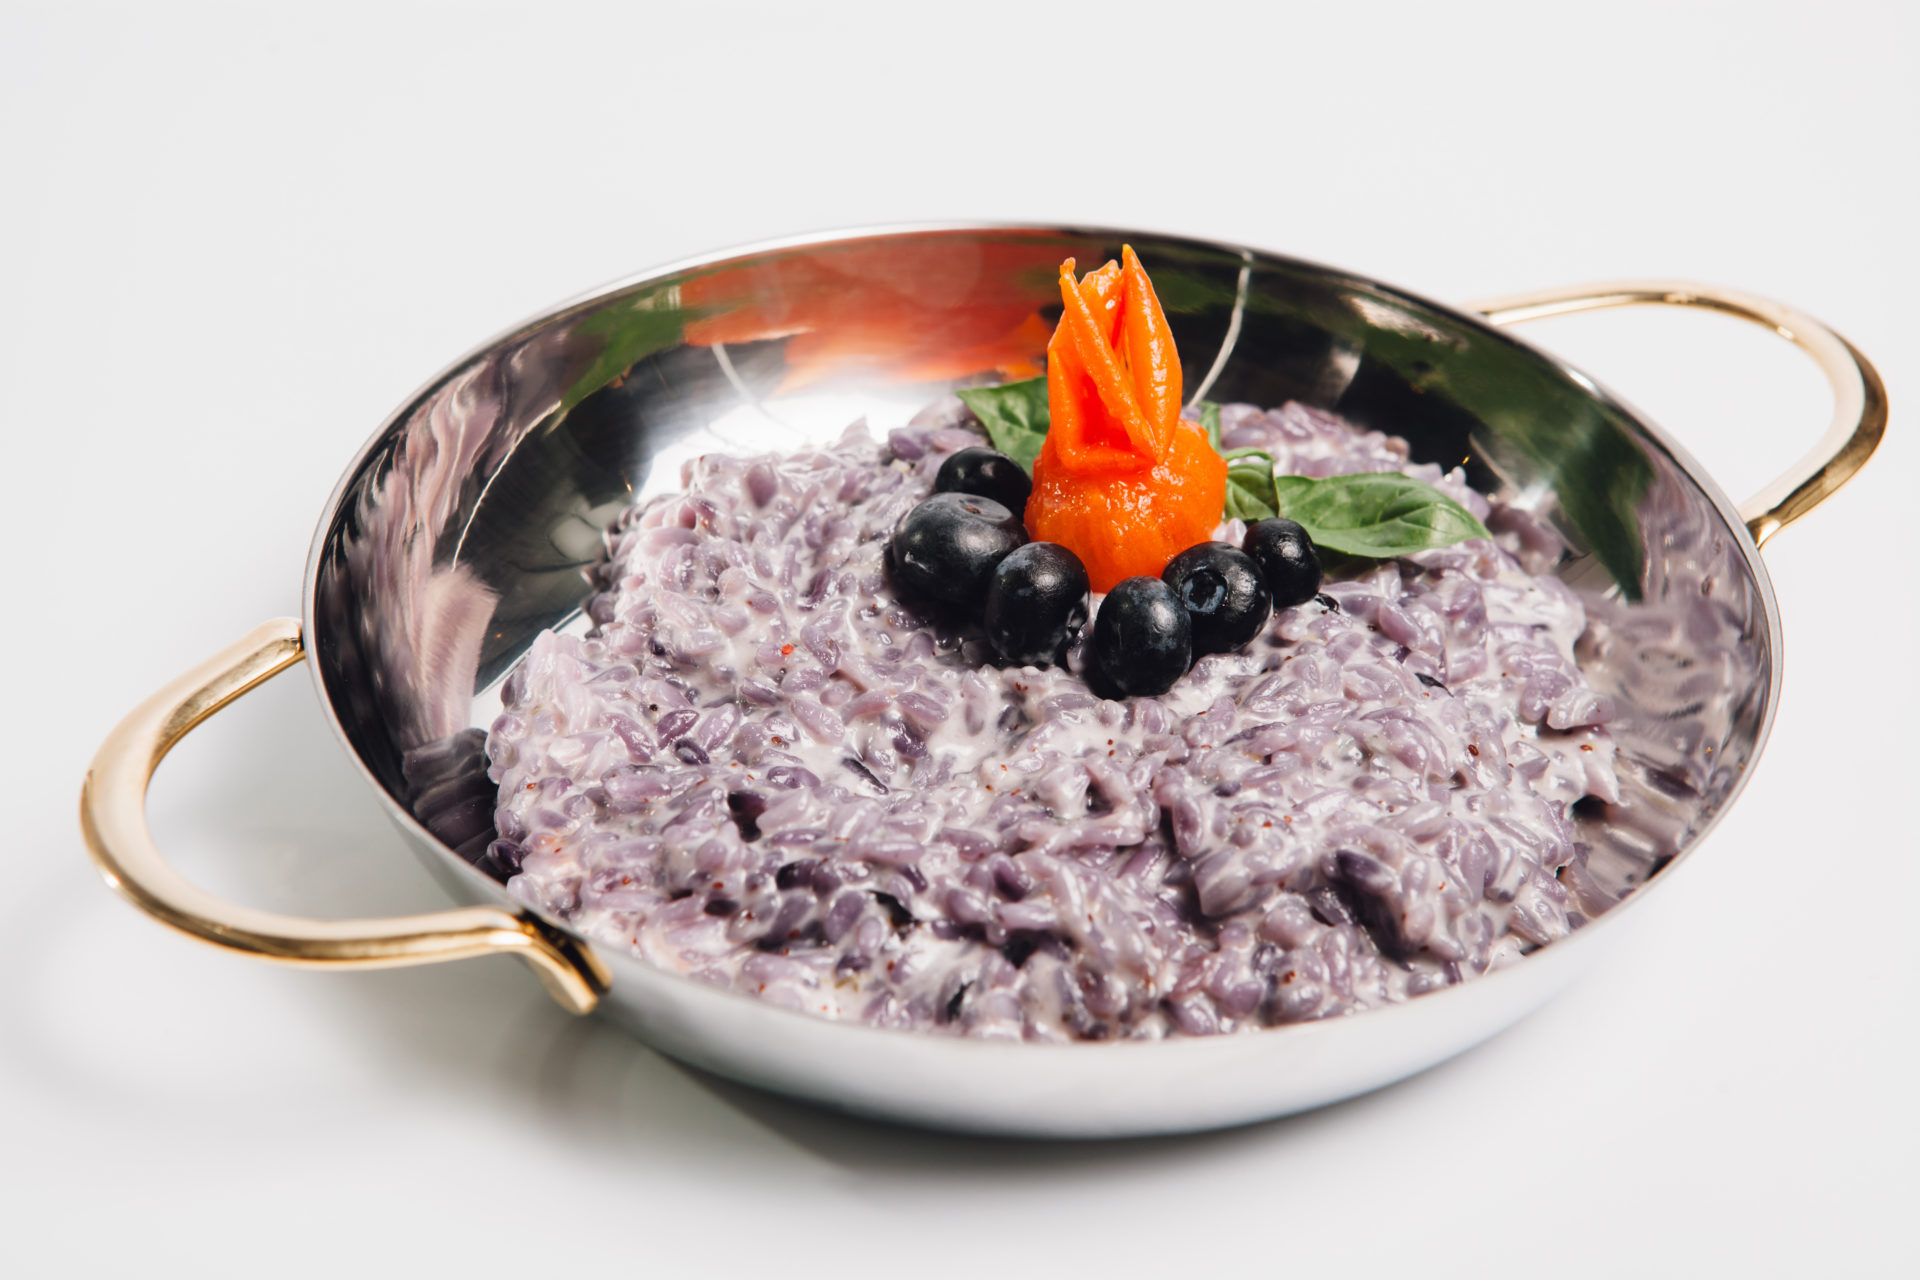 Metal,Bowl,With,Rice,And,Blueberry